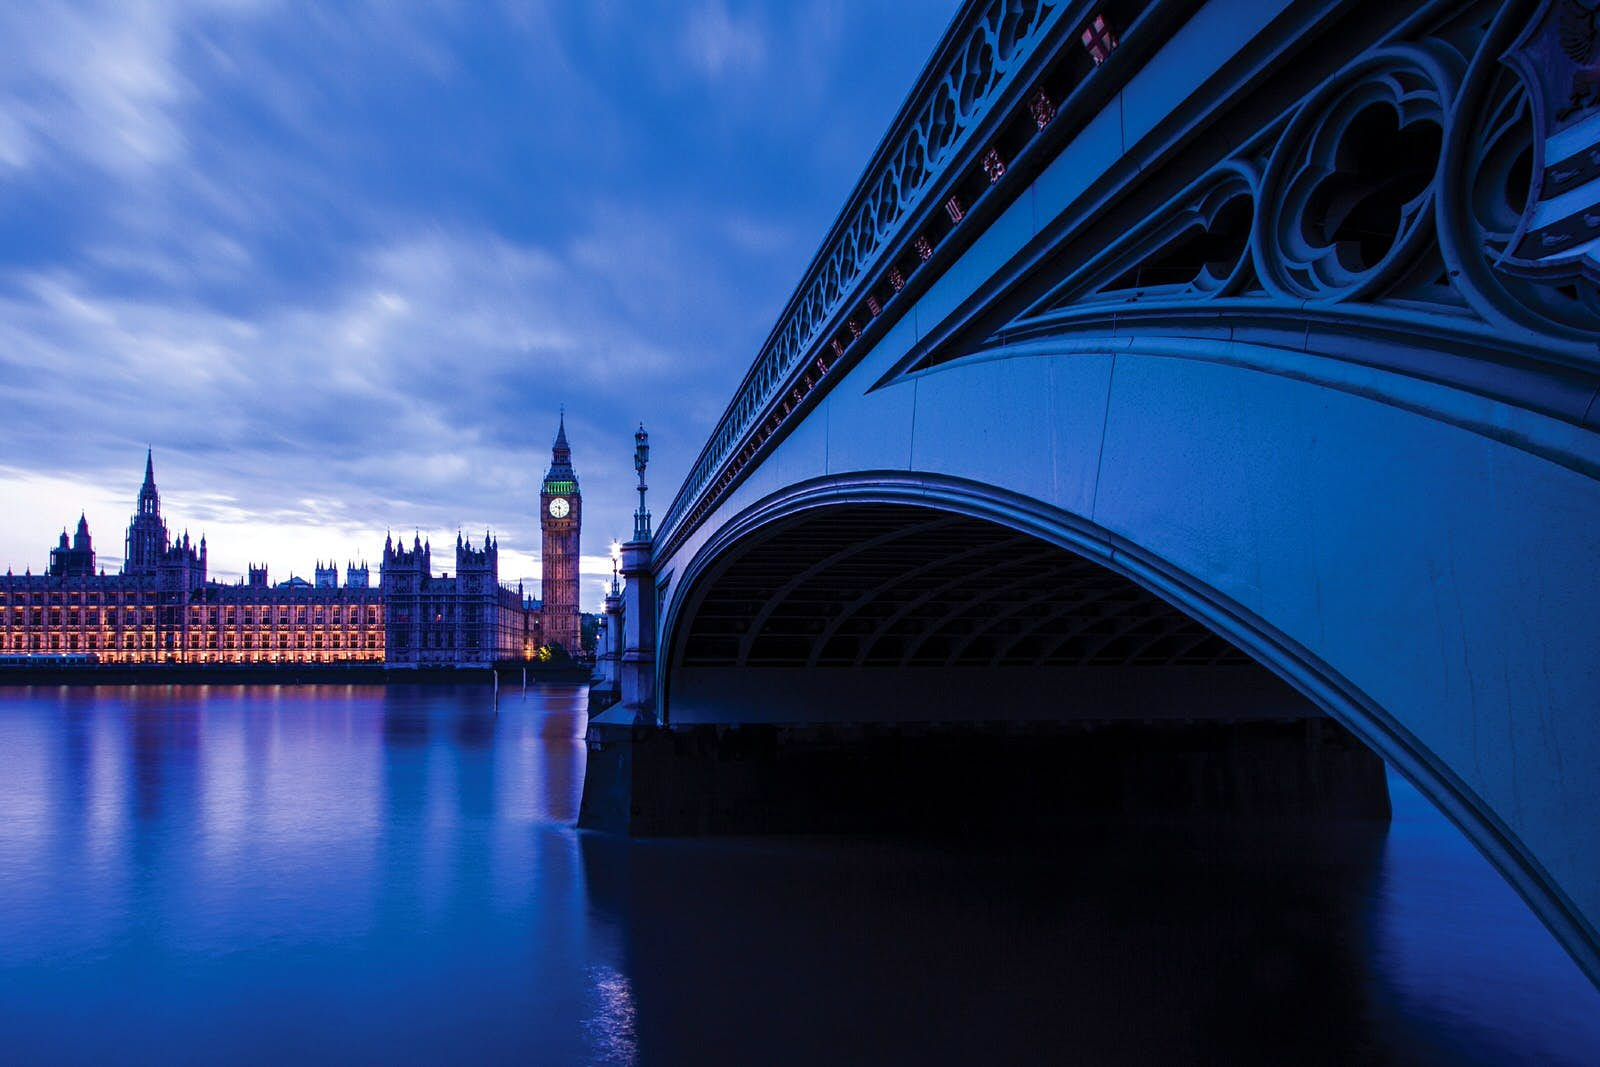 All Things Fair Movie Free Online top 20 free things to do in london - lonely planet